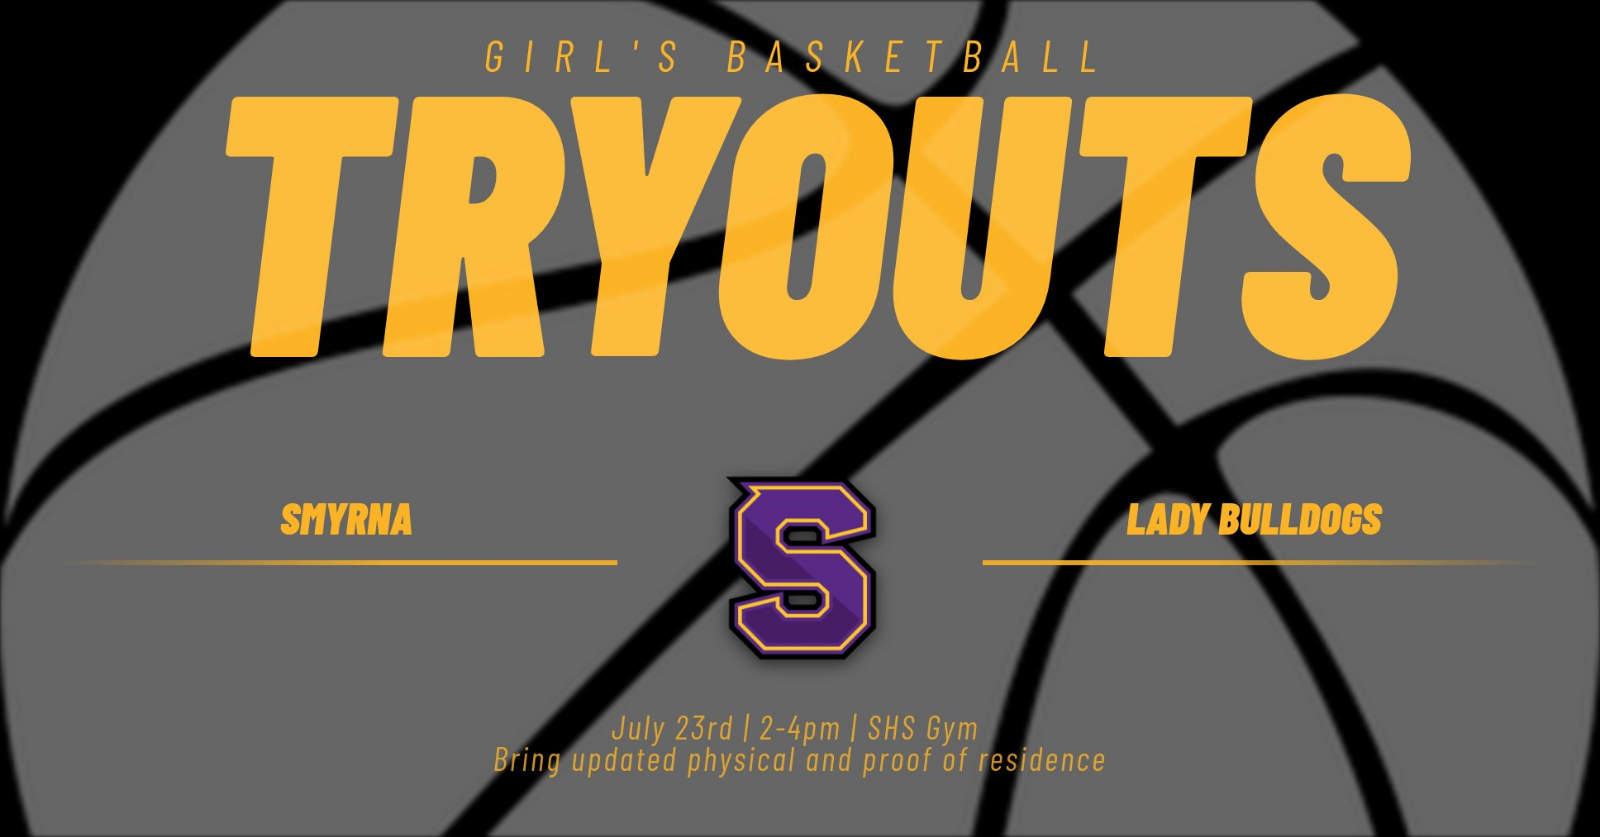 Girl's Basketball Tryout Date Posted